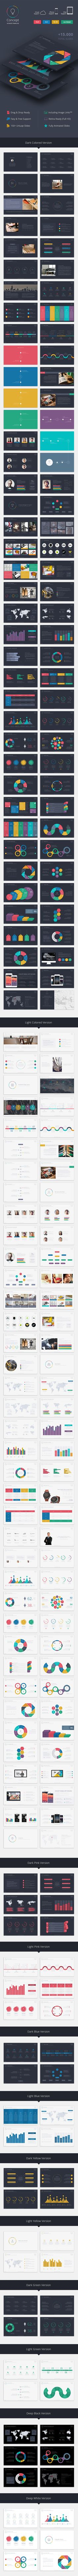 Concept is a multi-purpose presentation template. Impressive tool for presenting your company and your works.